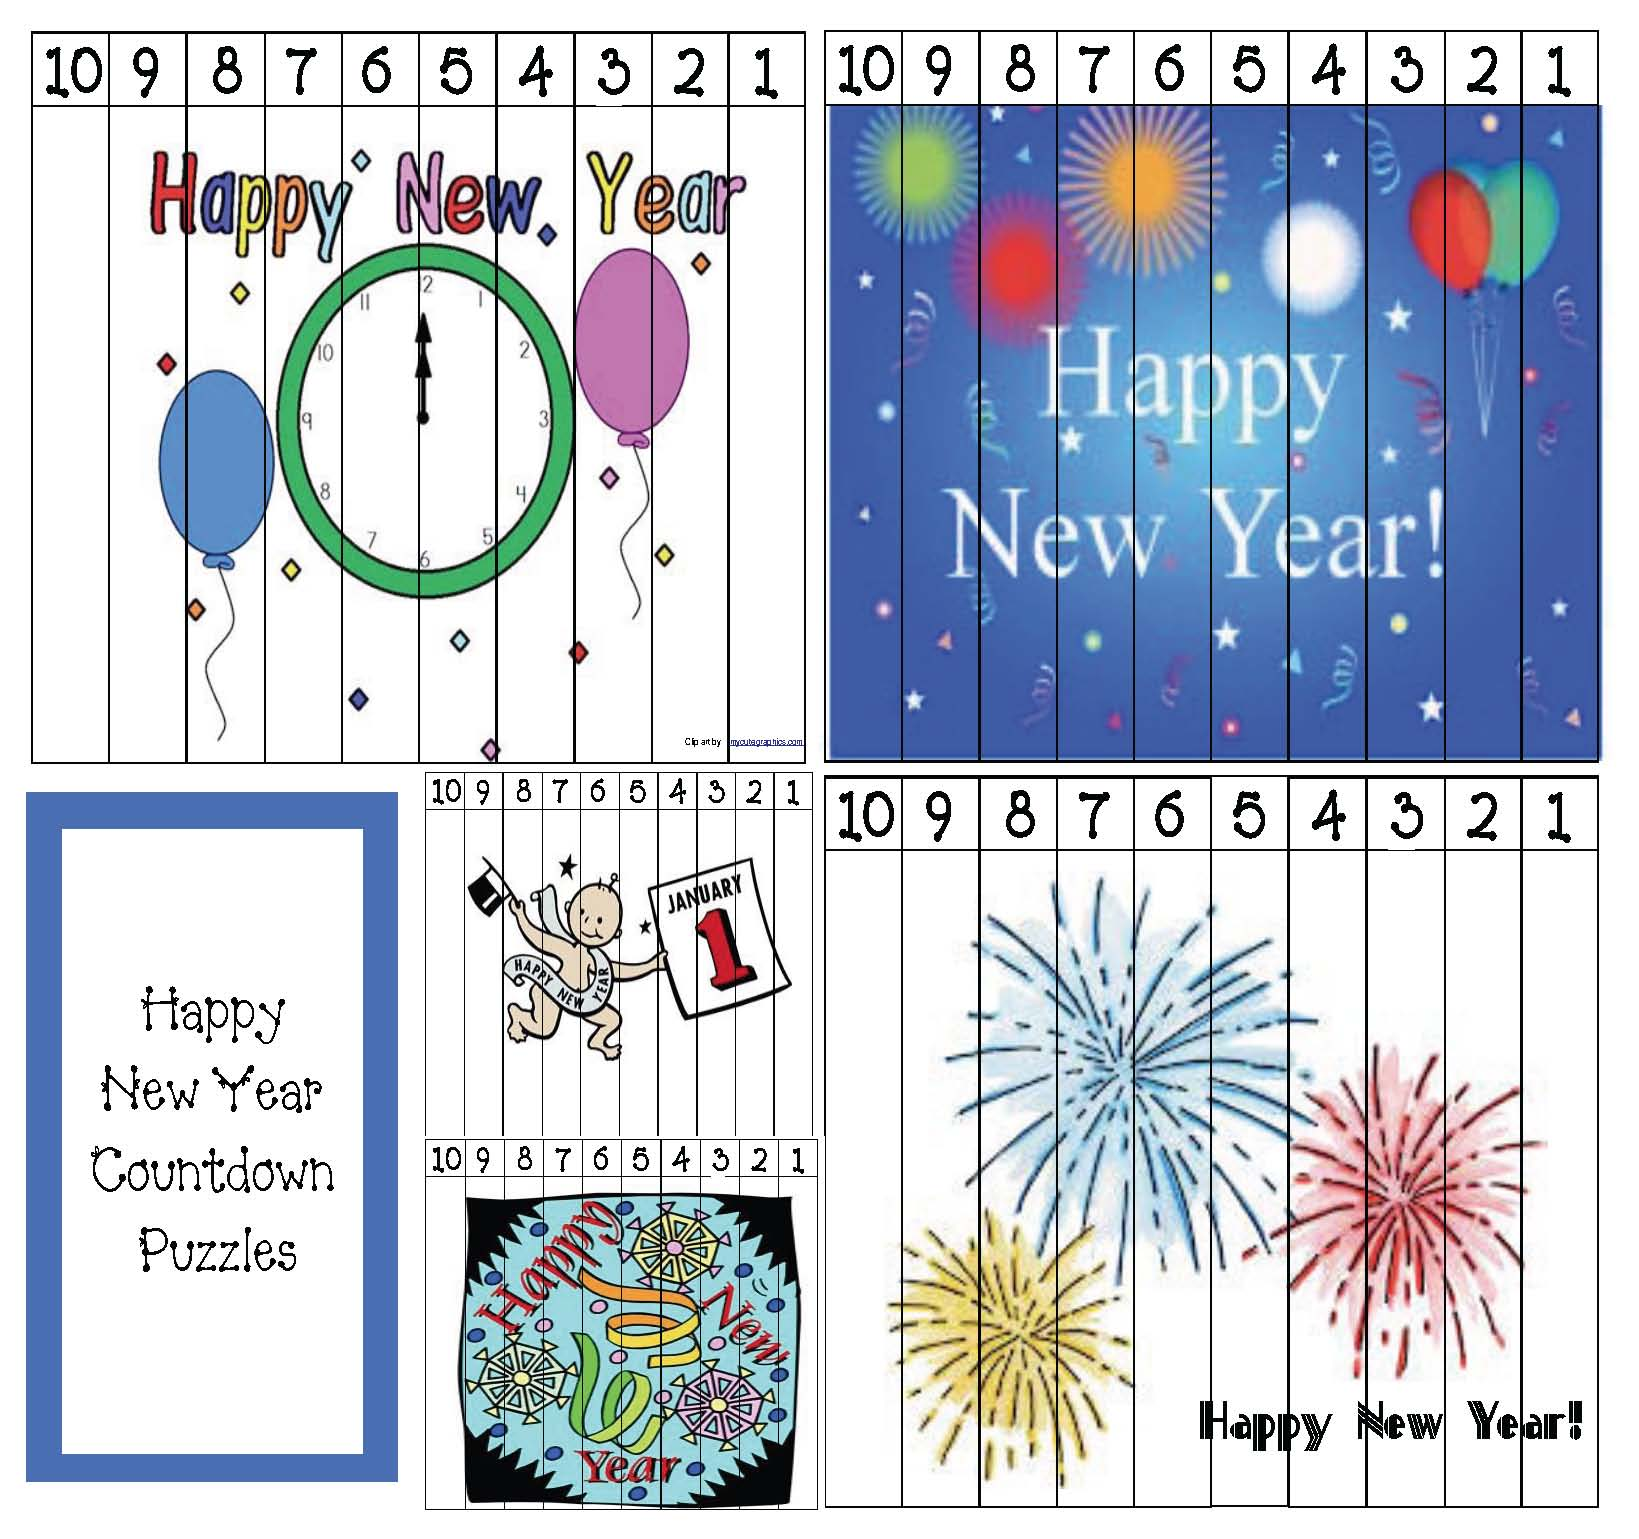 happy new year activities, new year activities, new year writing prompts, new year puzzles, number puzzles, new year crafts, new year bulletin boards, january bulletin boards, new year glasses pattern, january writing prompts, winter bulletin boards, january bulletin boards